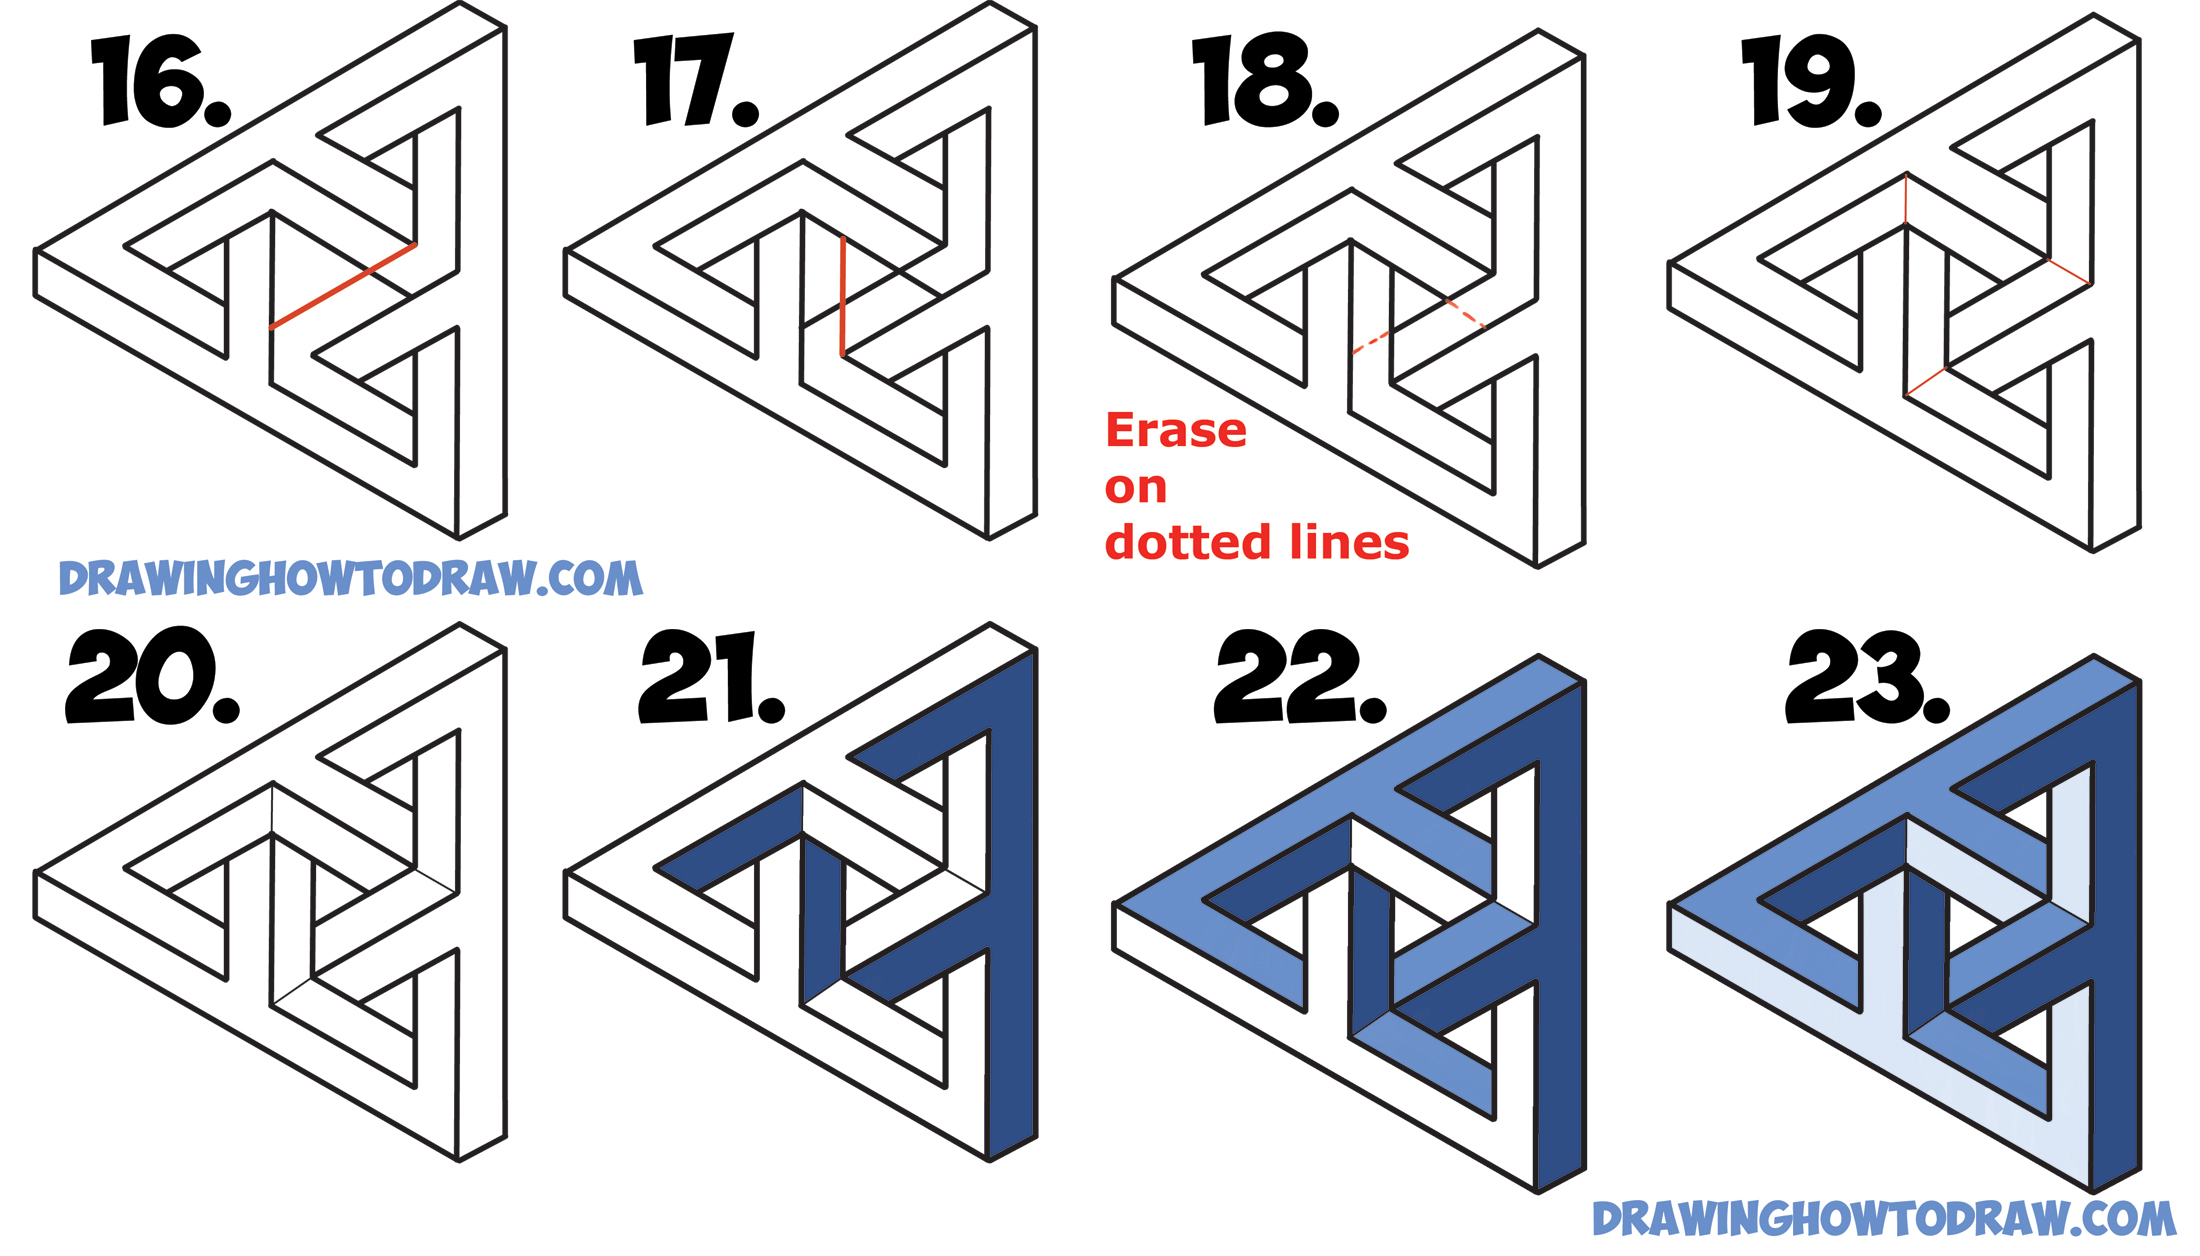 Drawn stars penrose Triangle) Impossible (Penrose for Triangle)